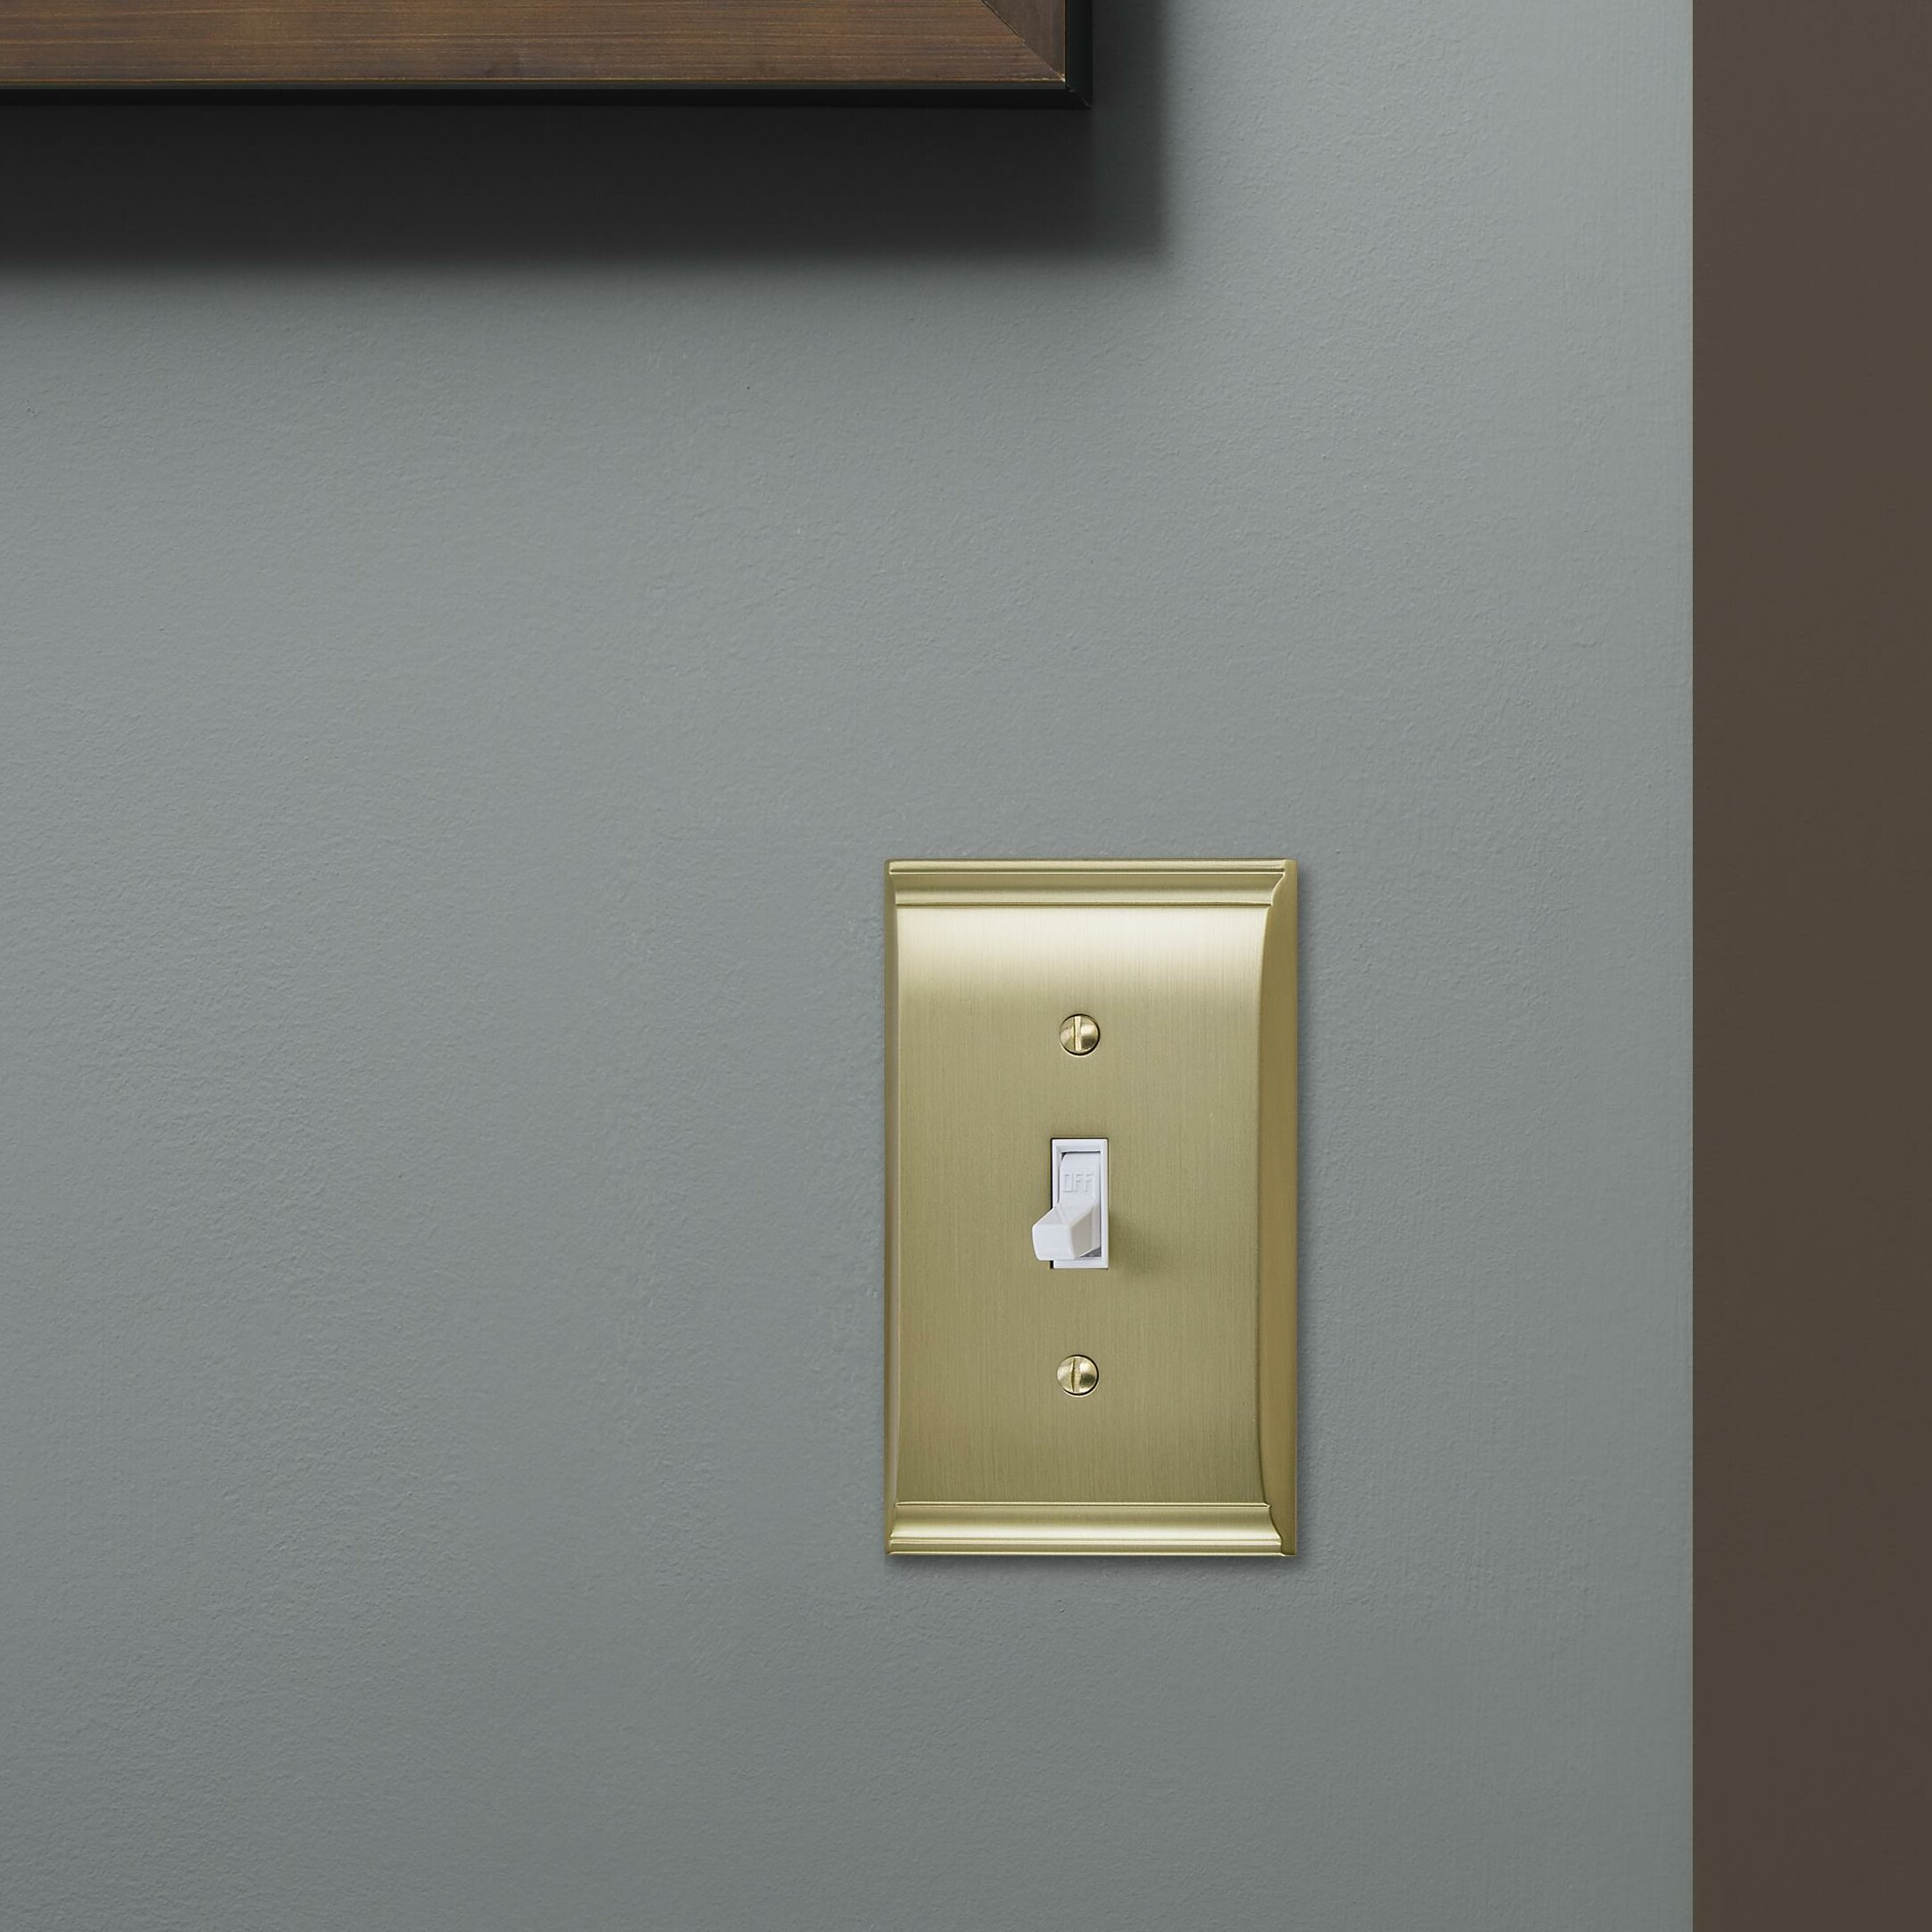 Amerock Candler 1 Gang Toggle Light Switch Wall Plate Reviews Wayfair